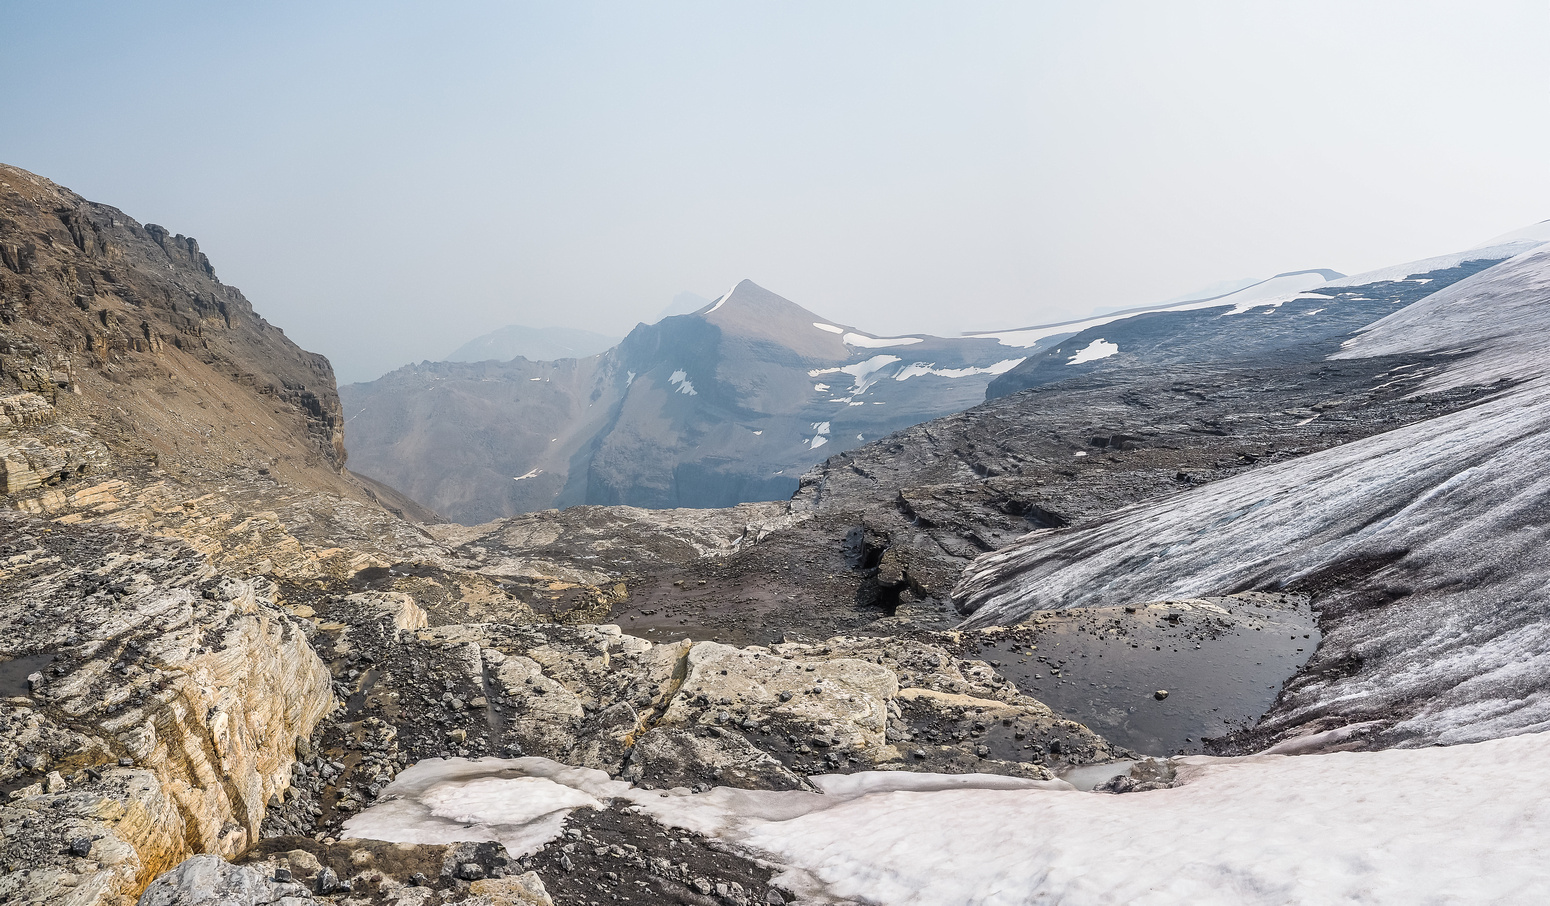 Sitting on the edge of the glacier, looking towards Conical Peak.